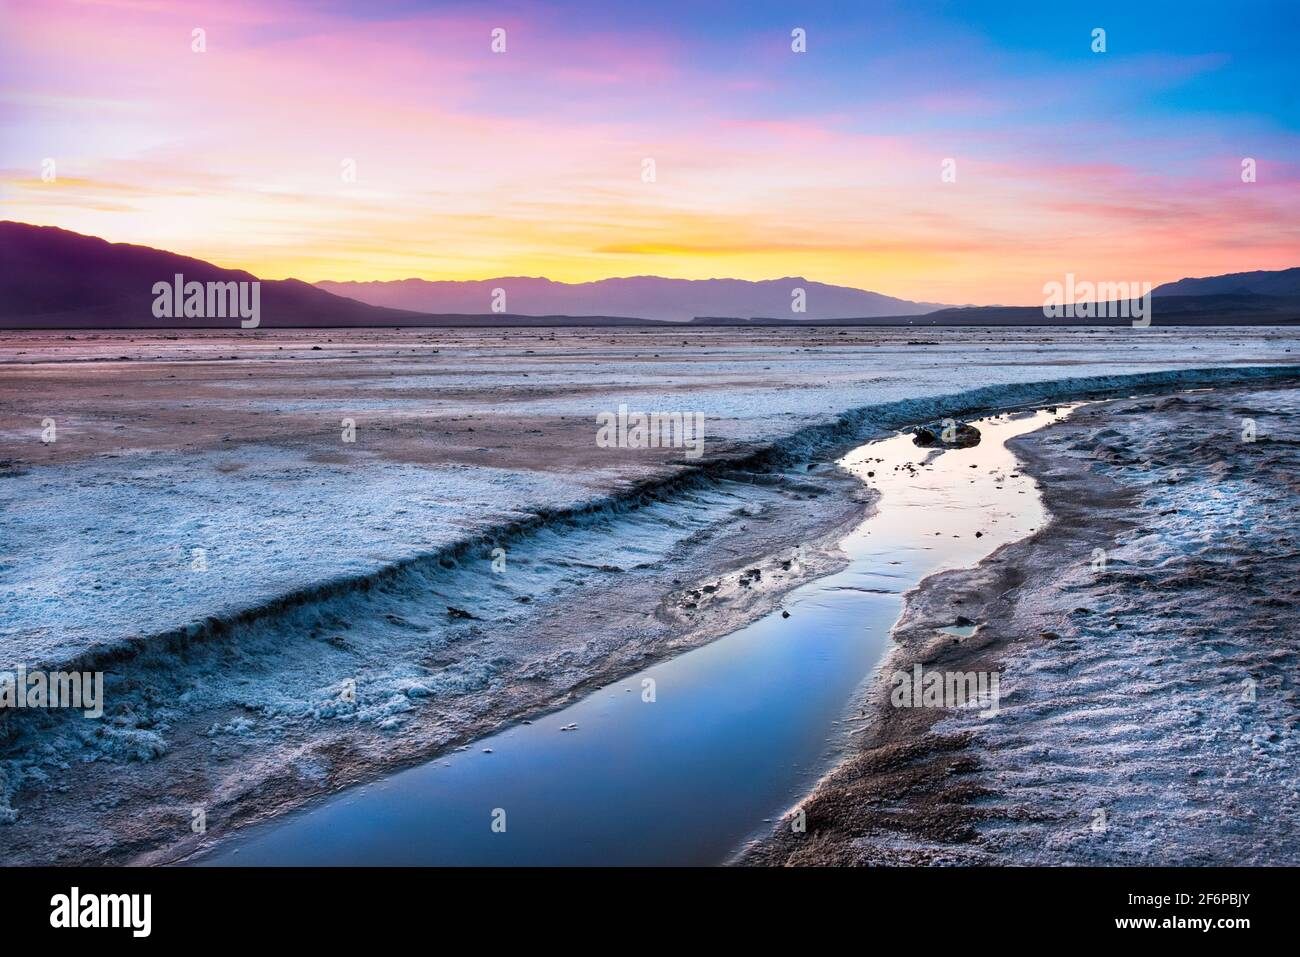 Beautiful Death Valley California landscape at sunset with salt creek in view Stock Photo